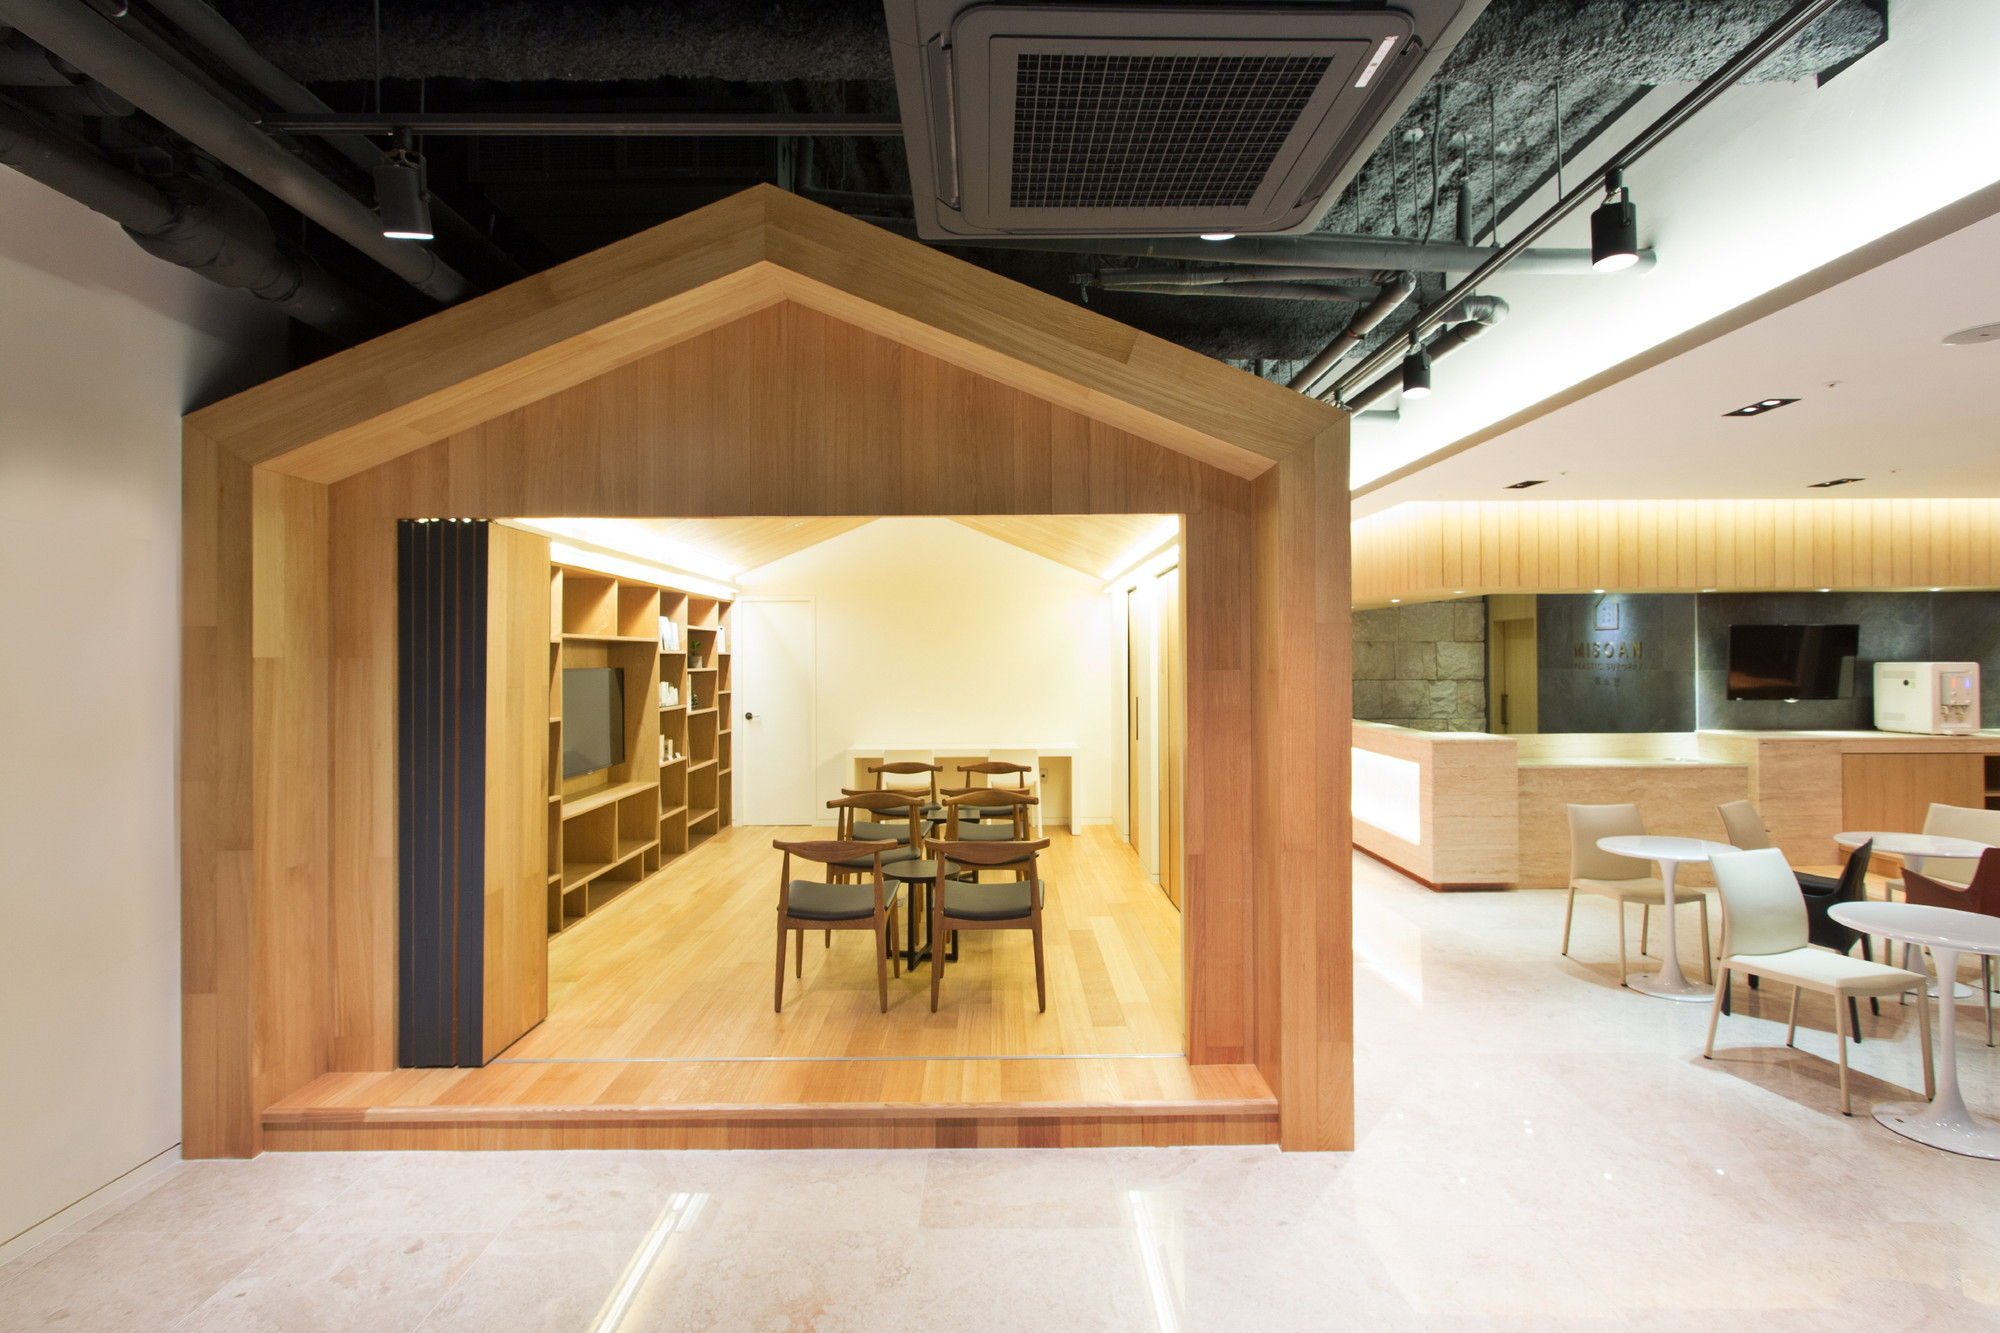 A house for nature and people ylab trapkay junghoon kim